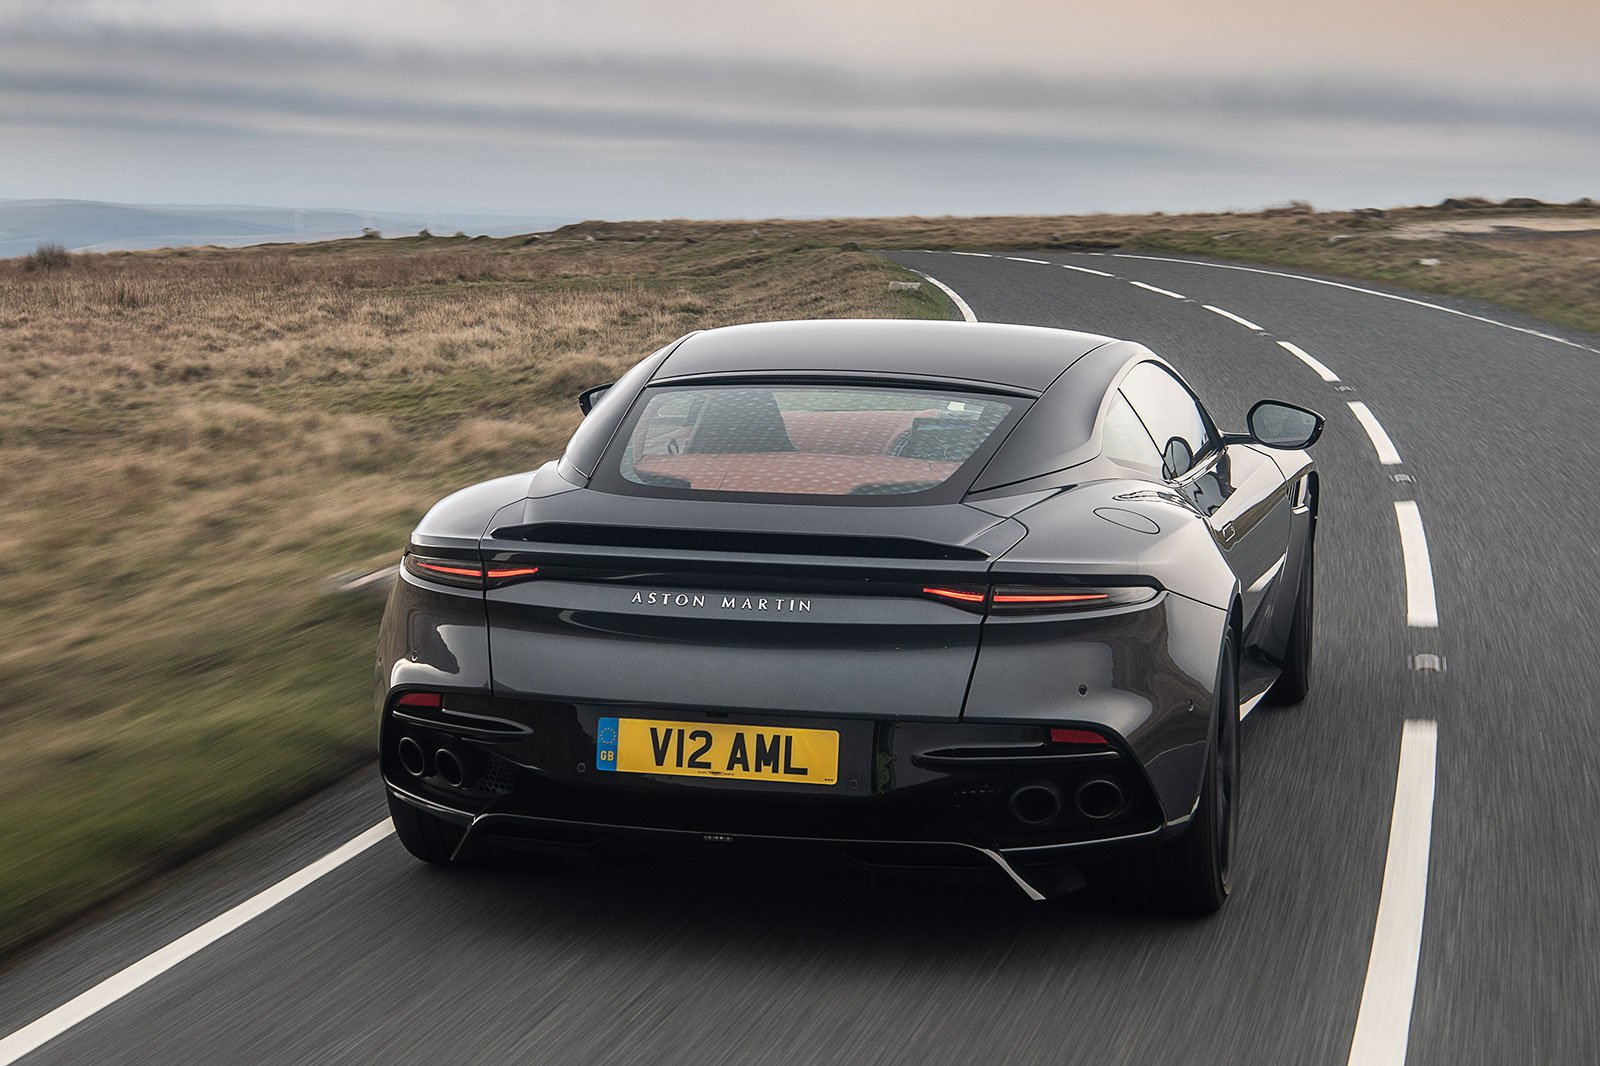 Aston Martin DBS Superleggera rear driving